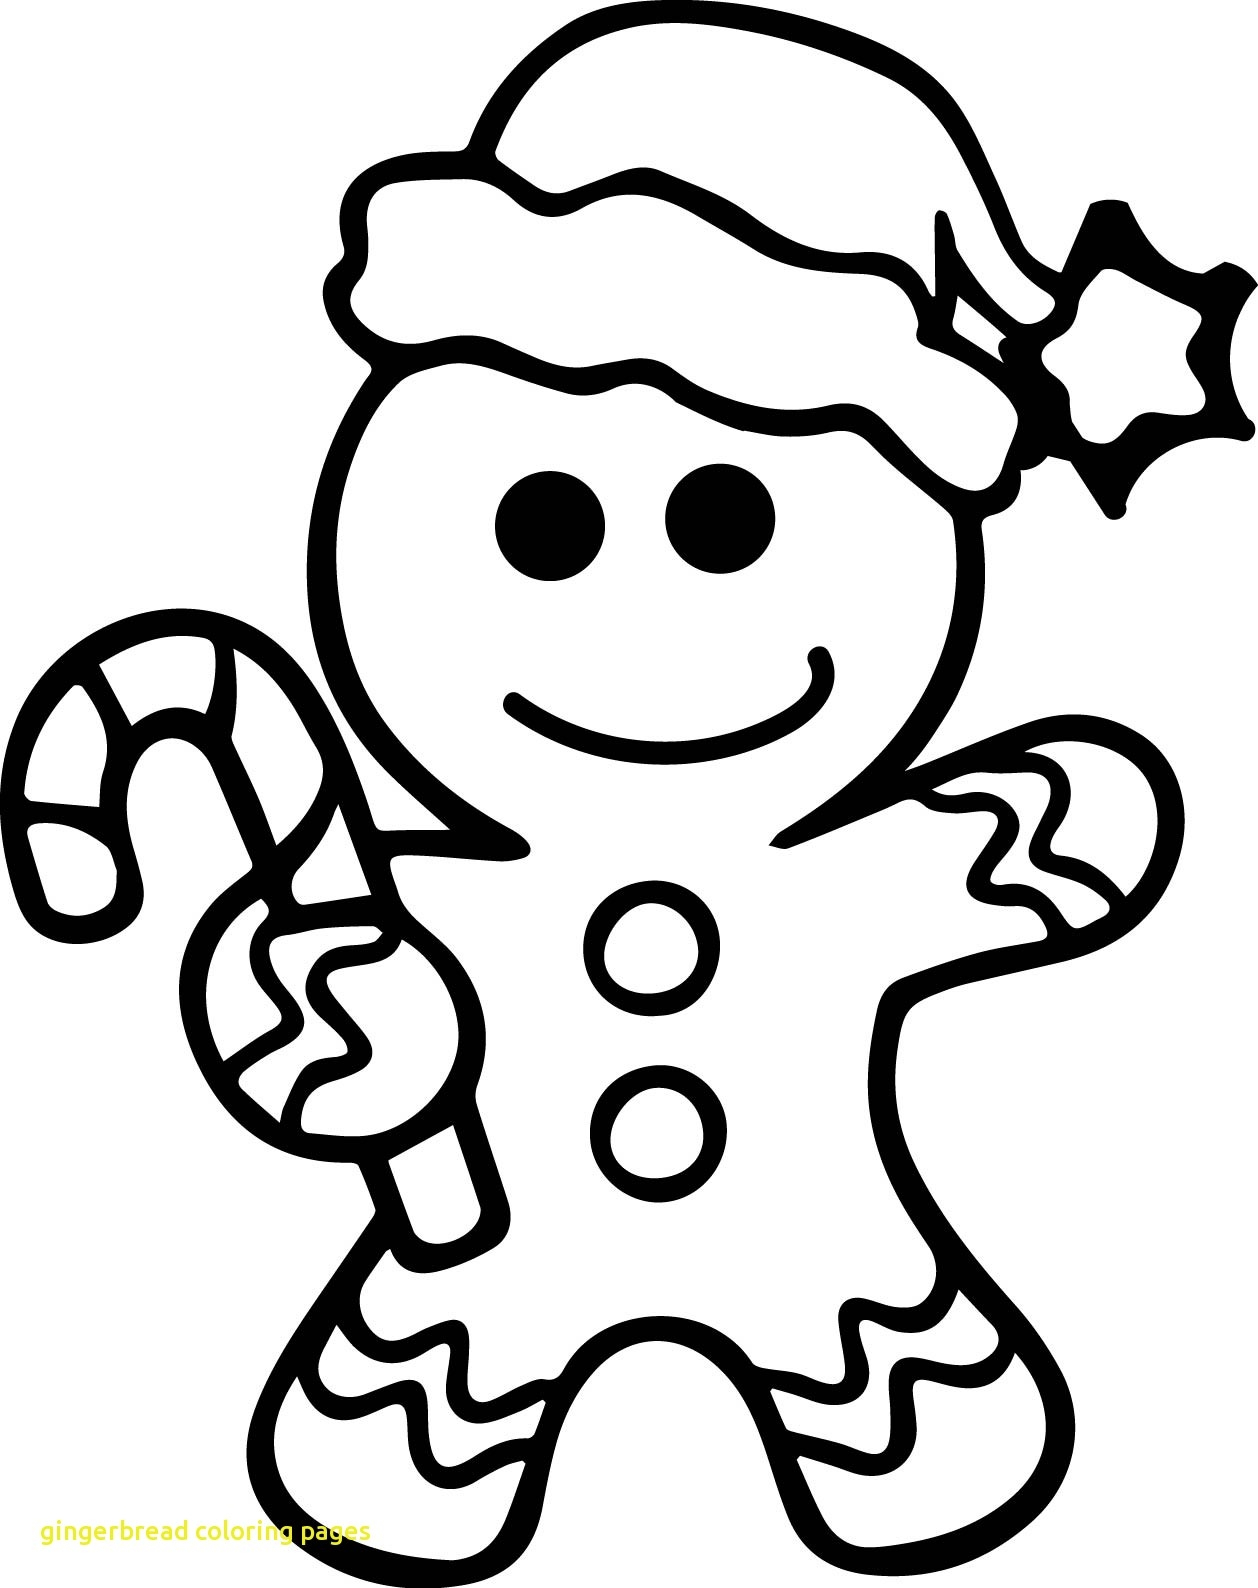 Free Christmas Coloring Pages Gingerbread Man With Download Books